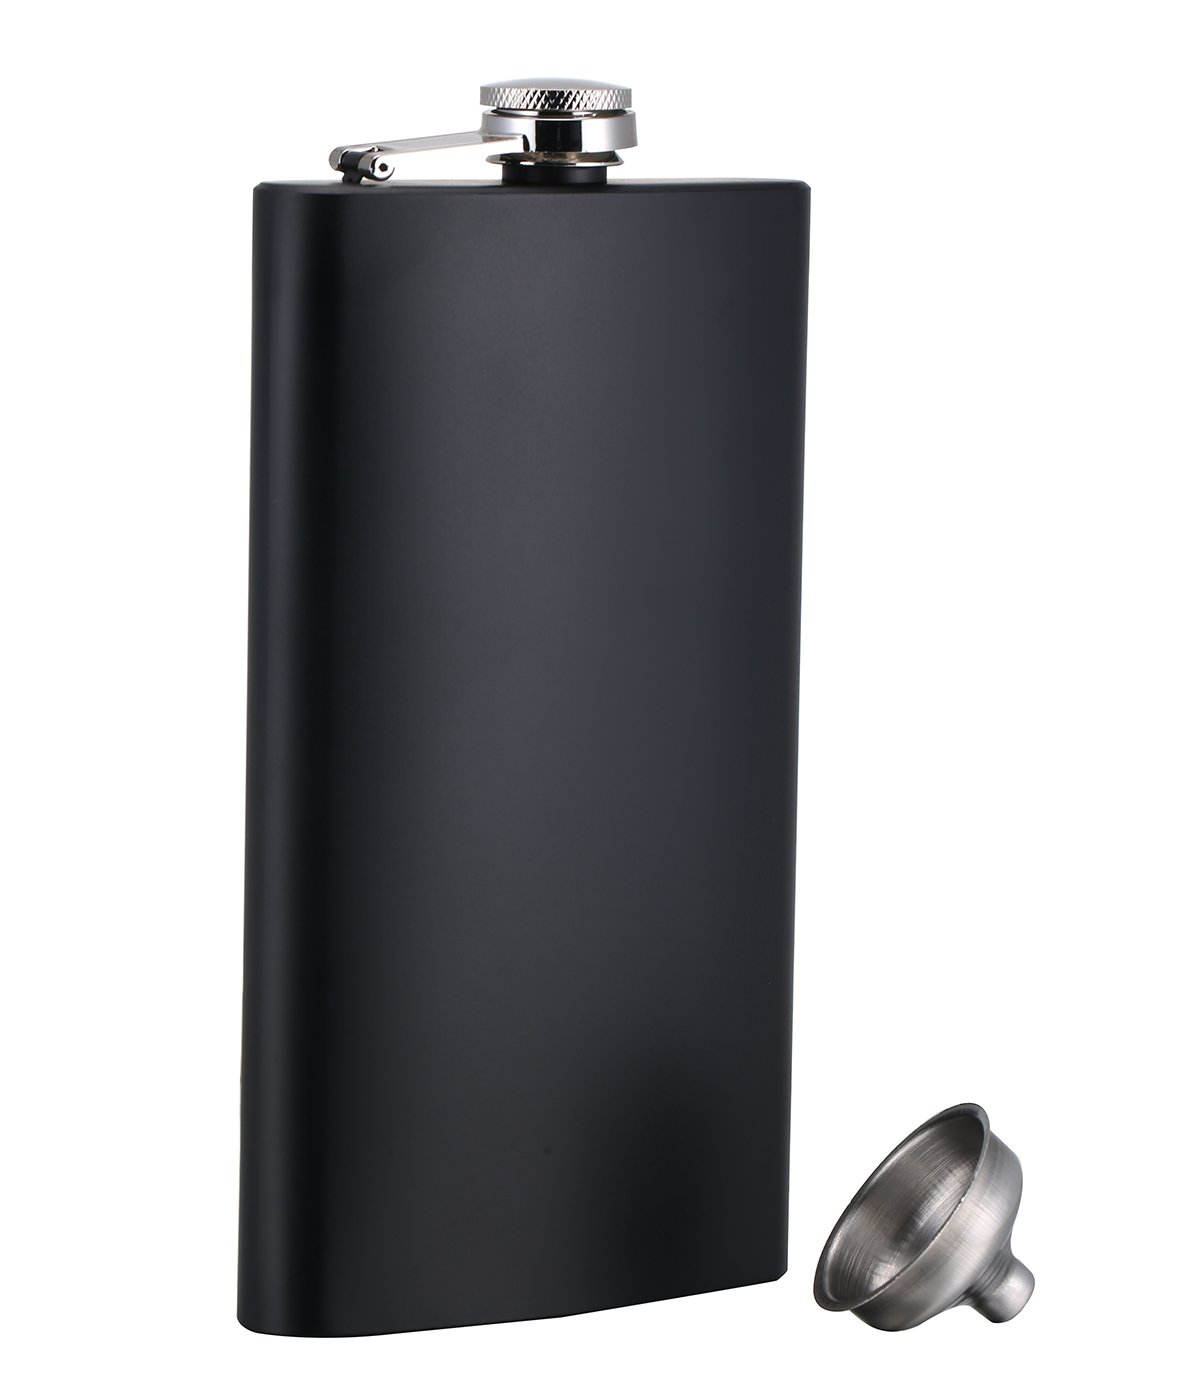 TOX TANEAXON 12 oz Matte Black Pocket Liquor Whiskey Hip Flask with Funnel and Premium Box - Stainless Steel and Leak Proof